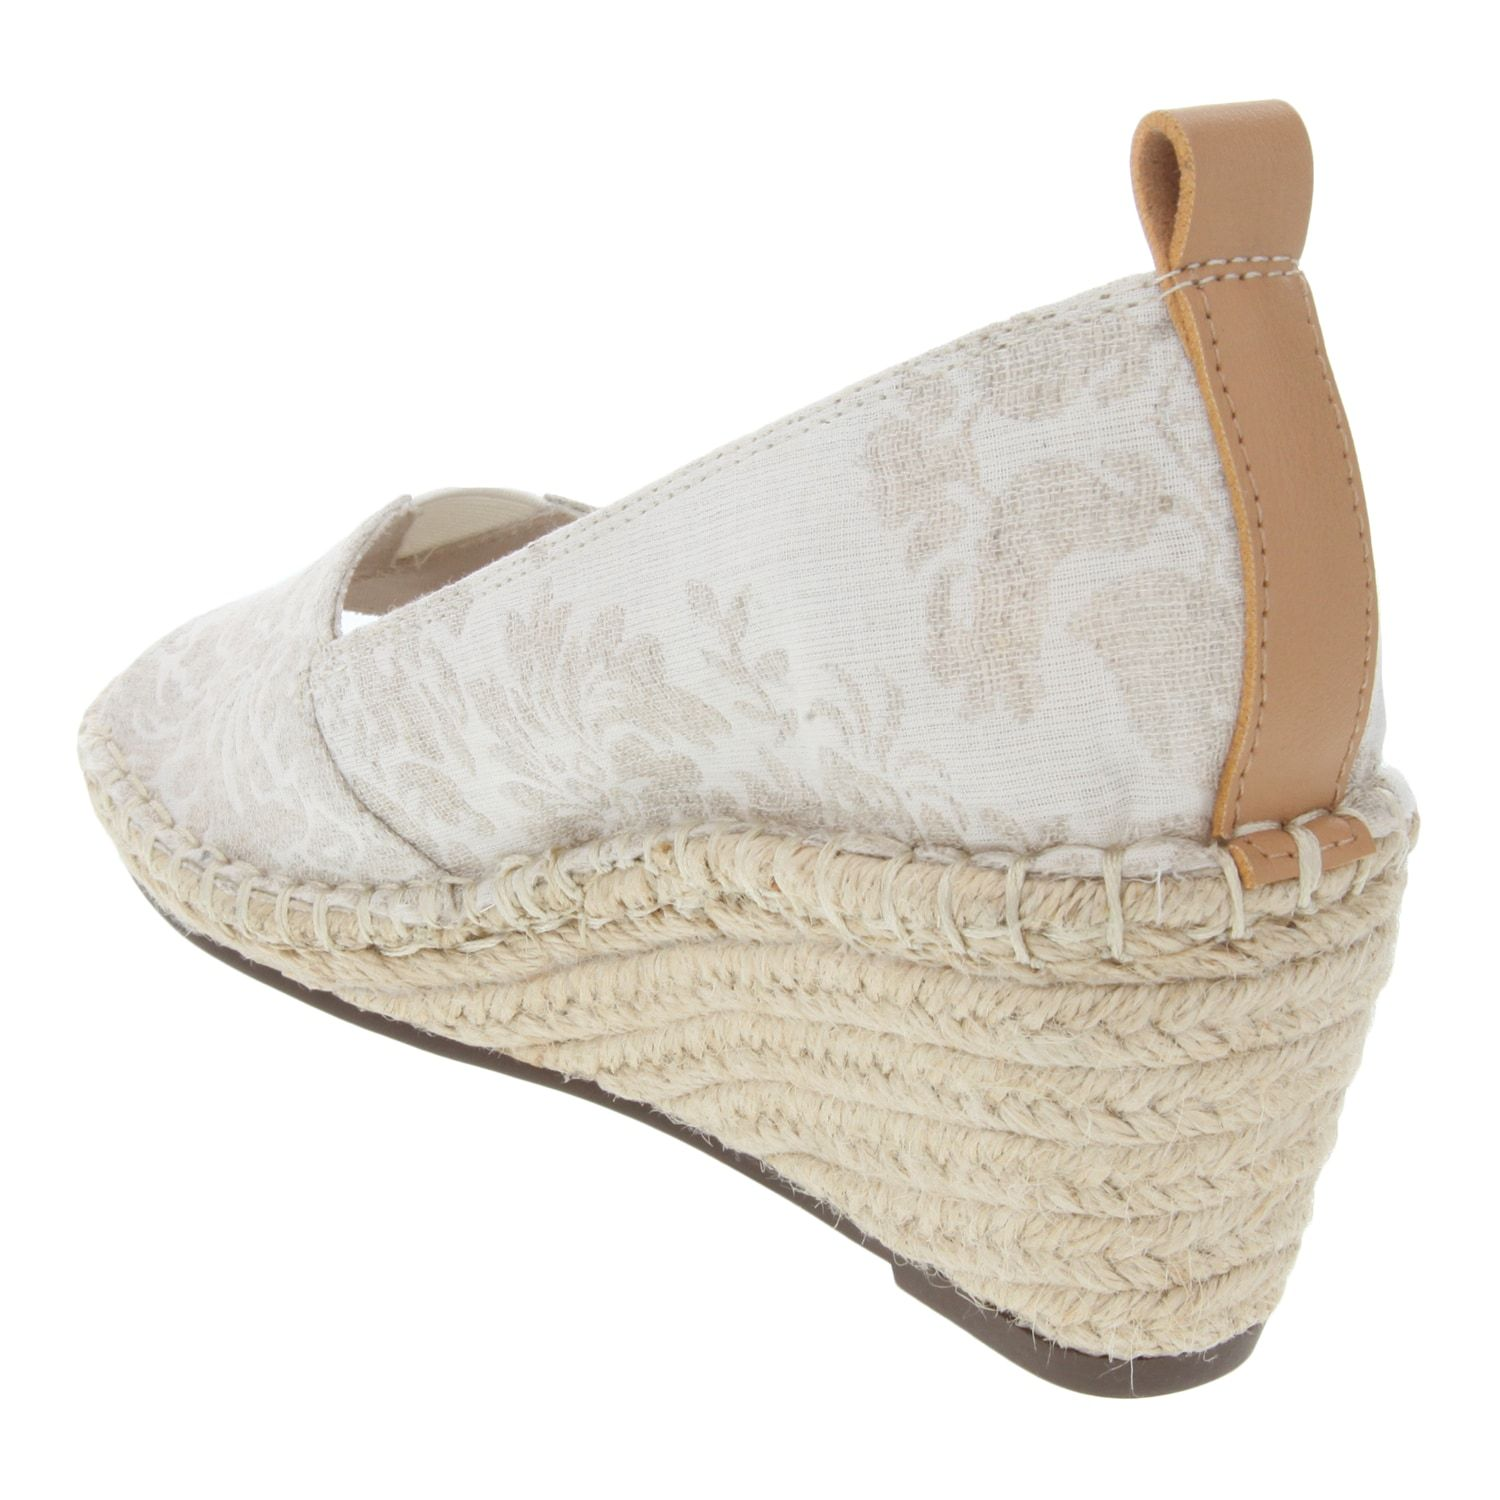 1370fd58587 Womens Gloria Vanderbilt Franklin Open Toe Espadrille Wedge ...